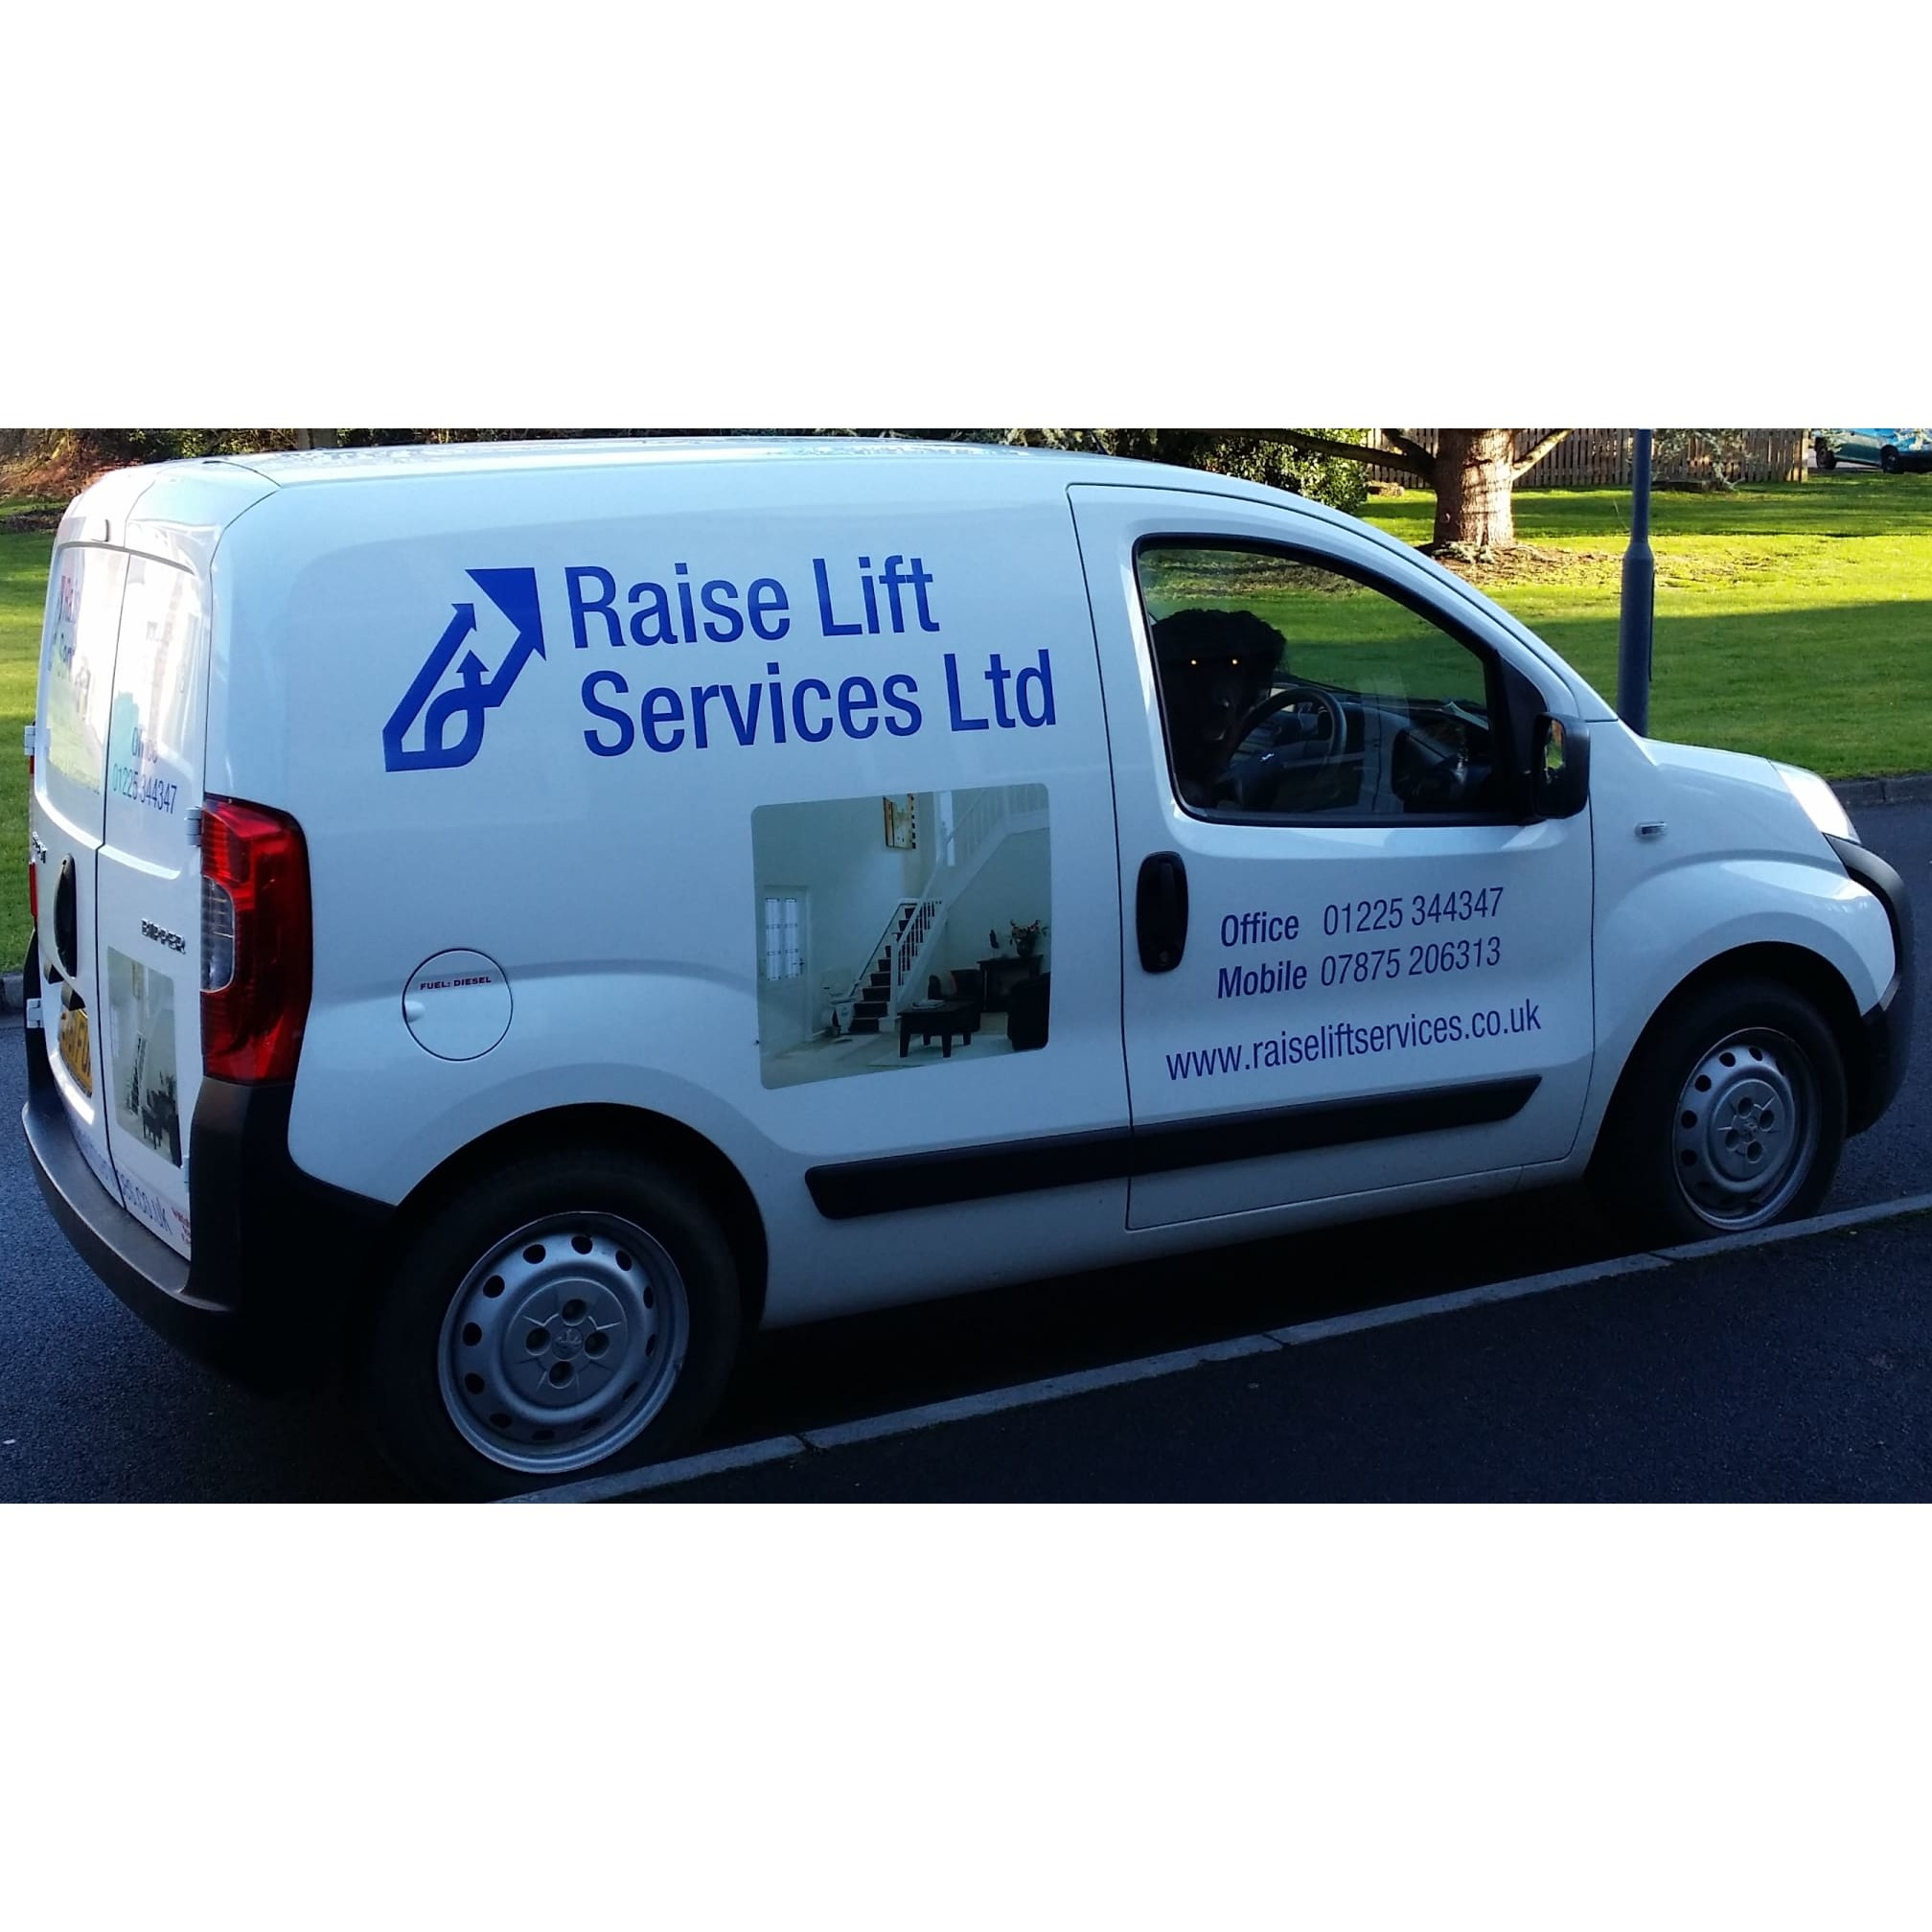 Raise Lift Services Ltd - Melksham, Wiltshire SN12 8BT - 01225 684048 | ShowMeLocal.com